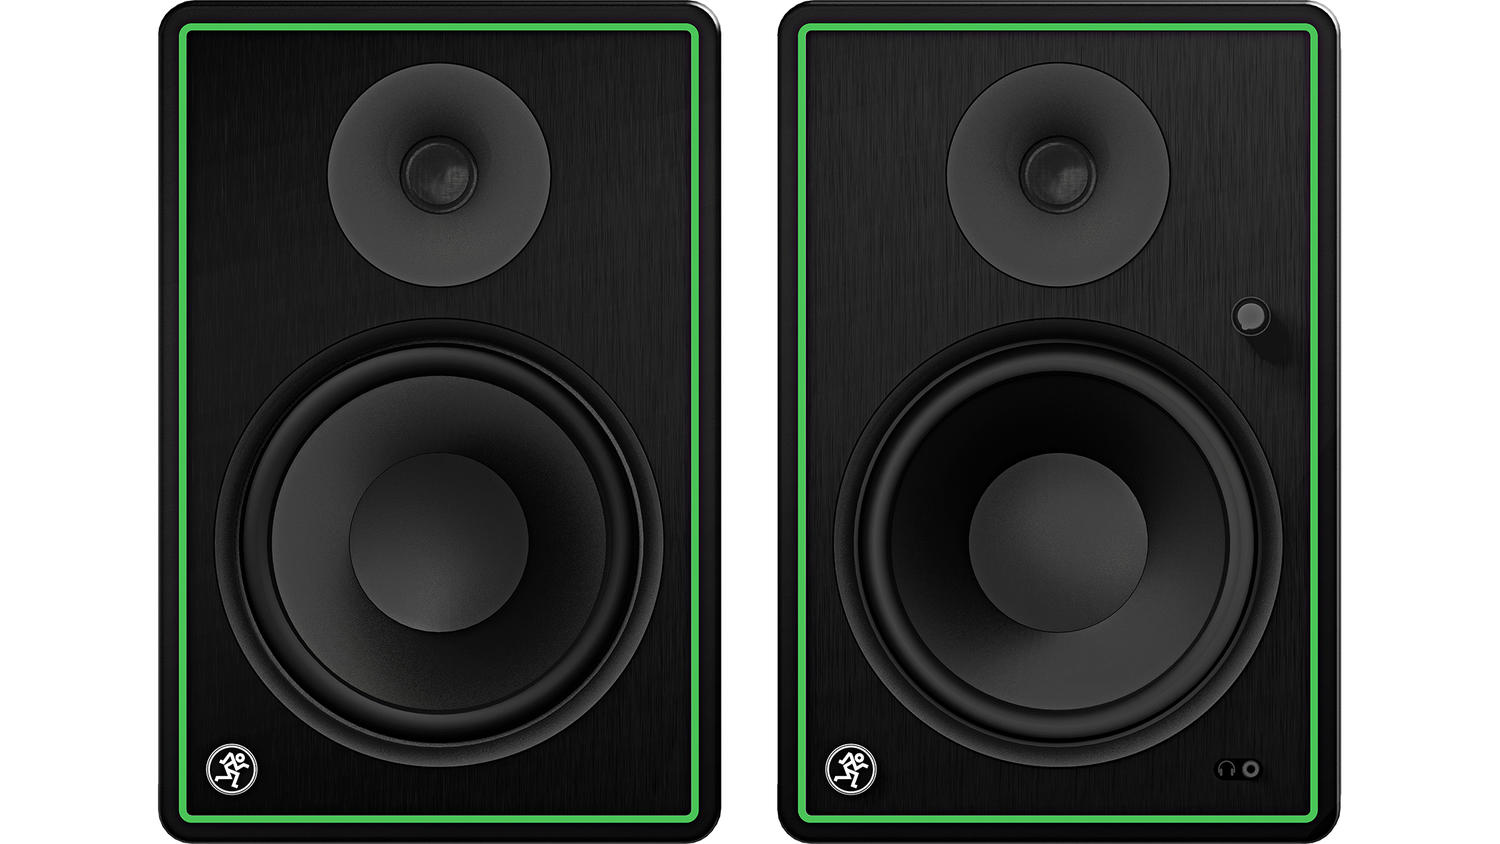 Mackie-CR8-XBT-studio-monitor-review